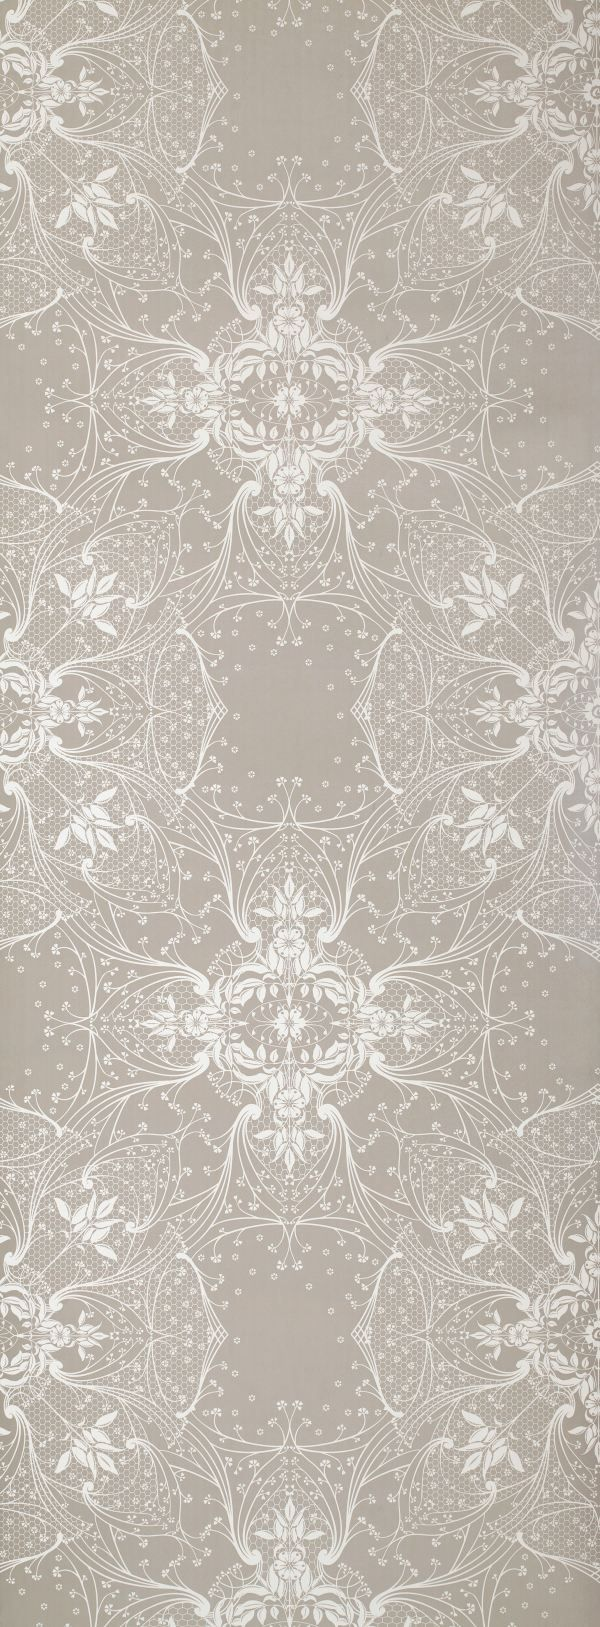 The beautiful Catherine Martin wallpaper we are using in the entry.